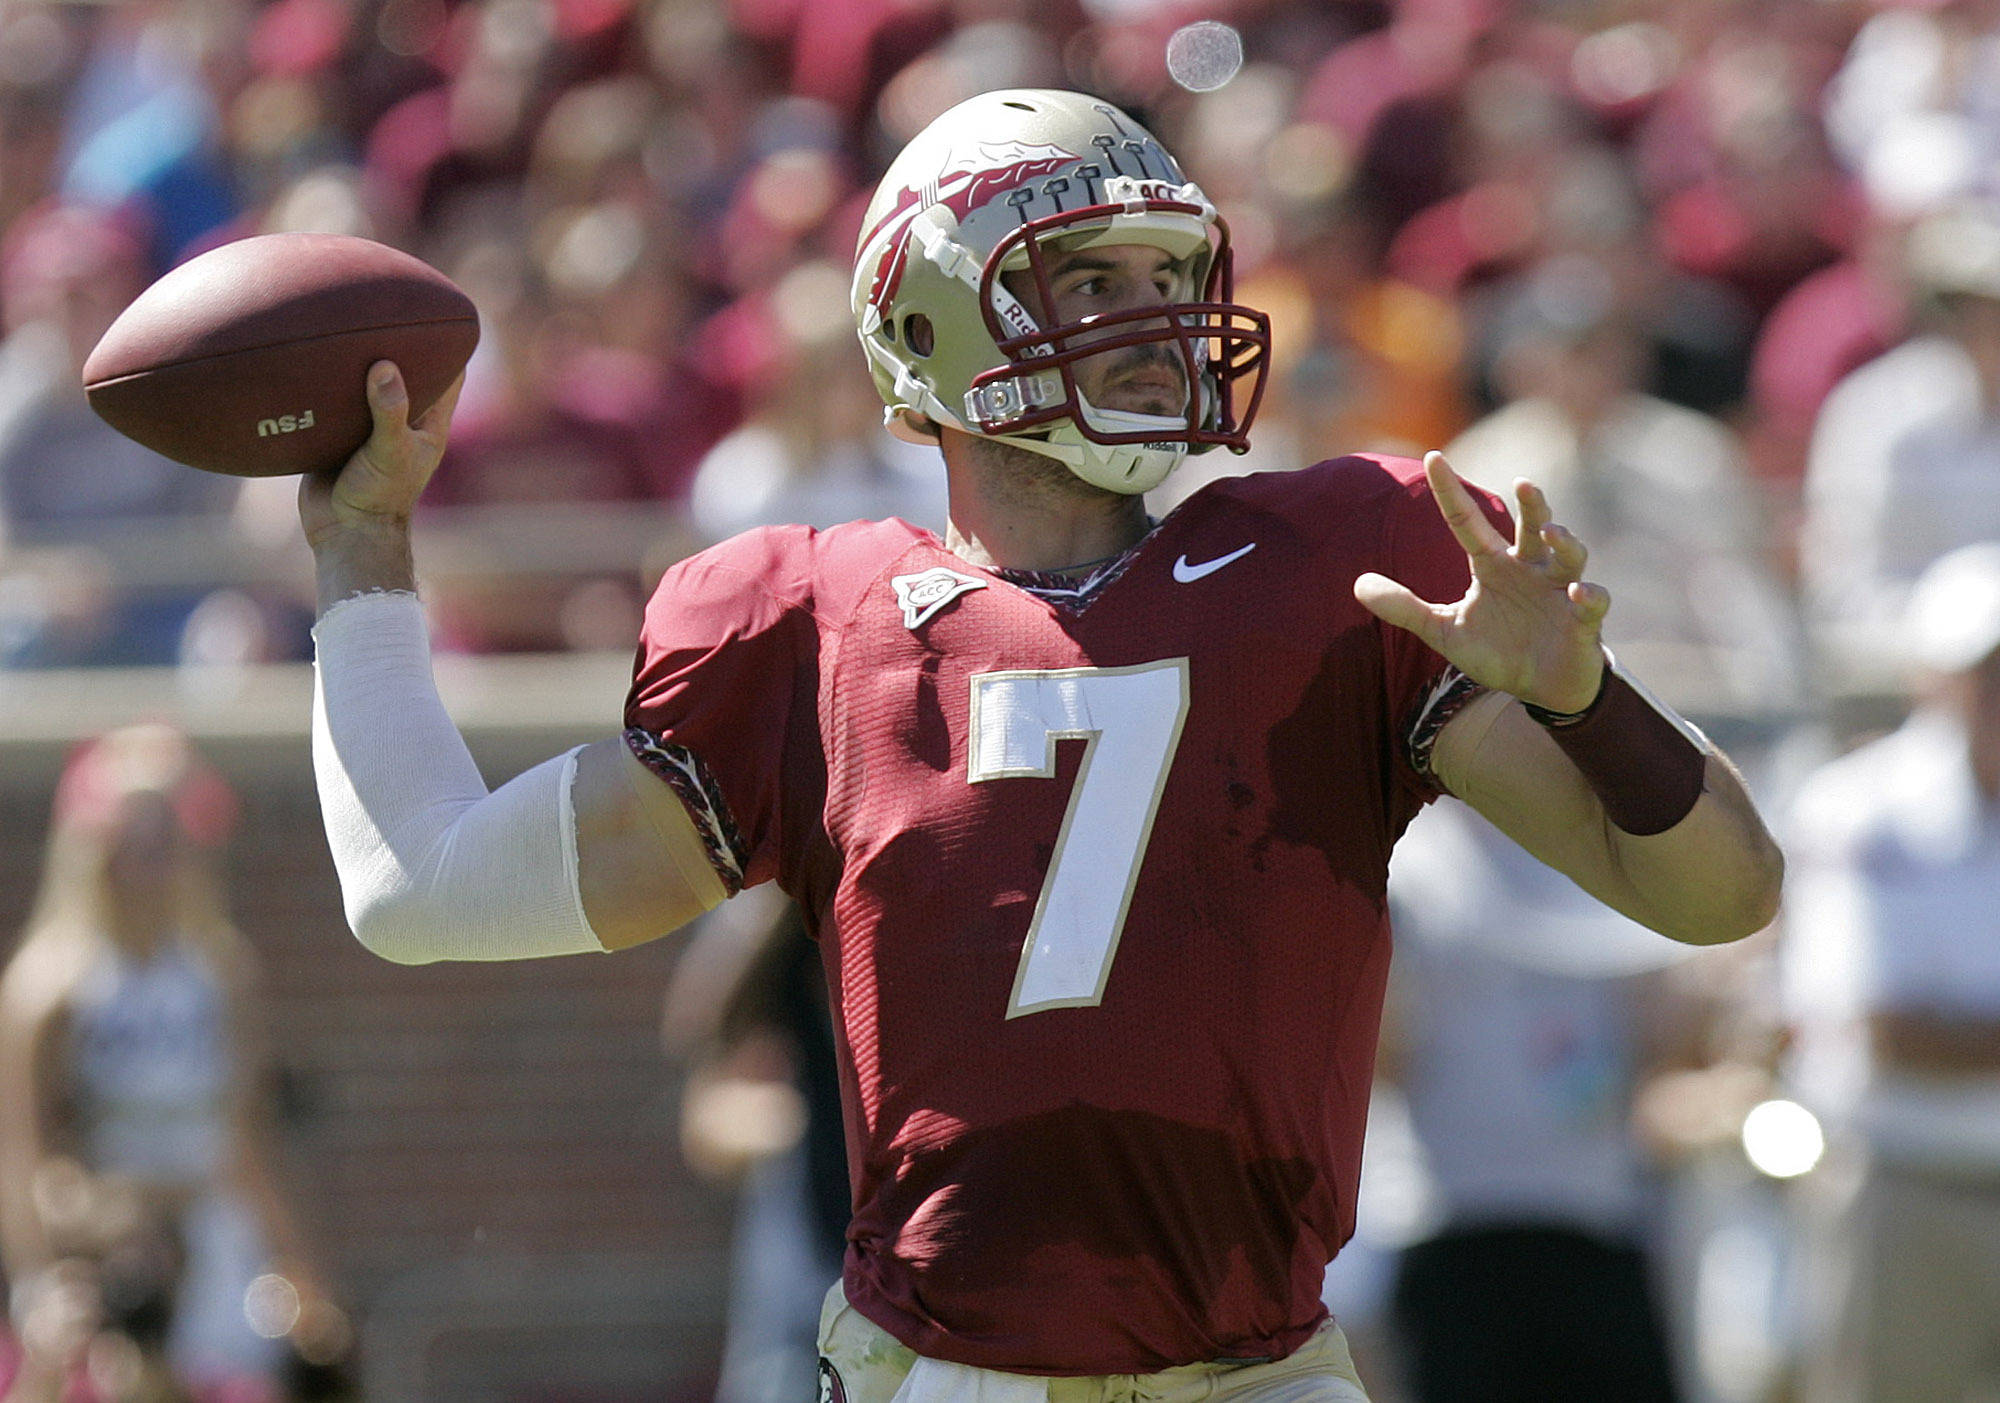 Florida State's Christian Ponder winds up for a pass. (AP Photo/Steve Cannon)